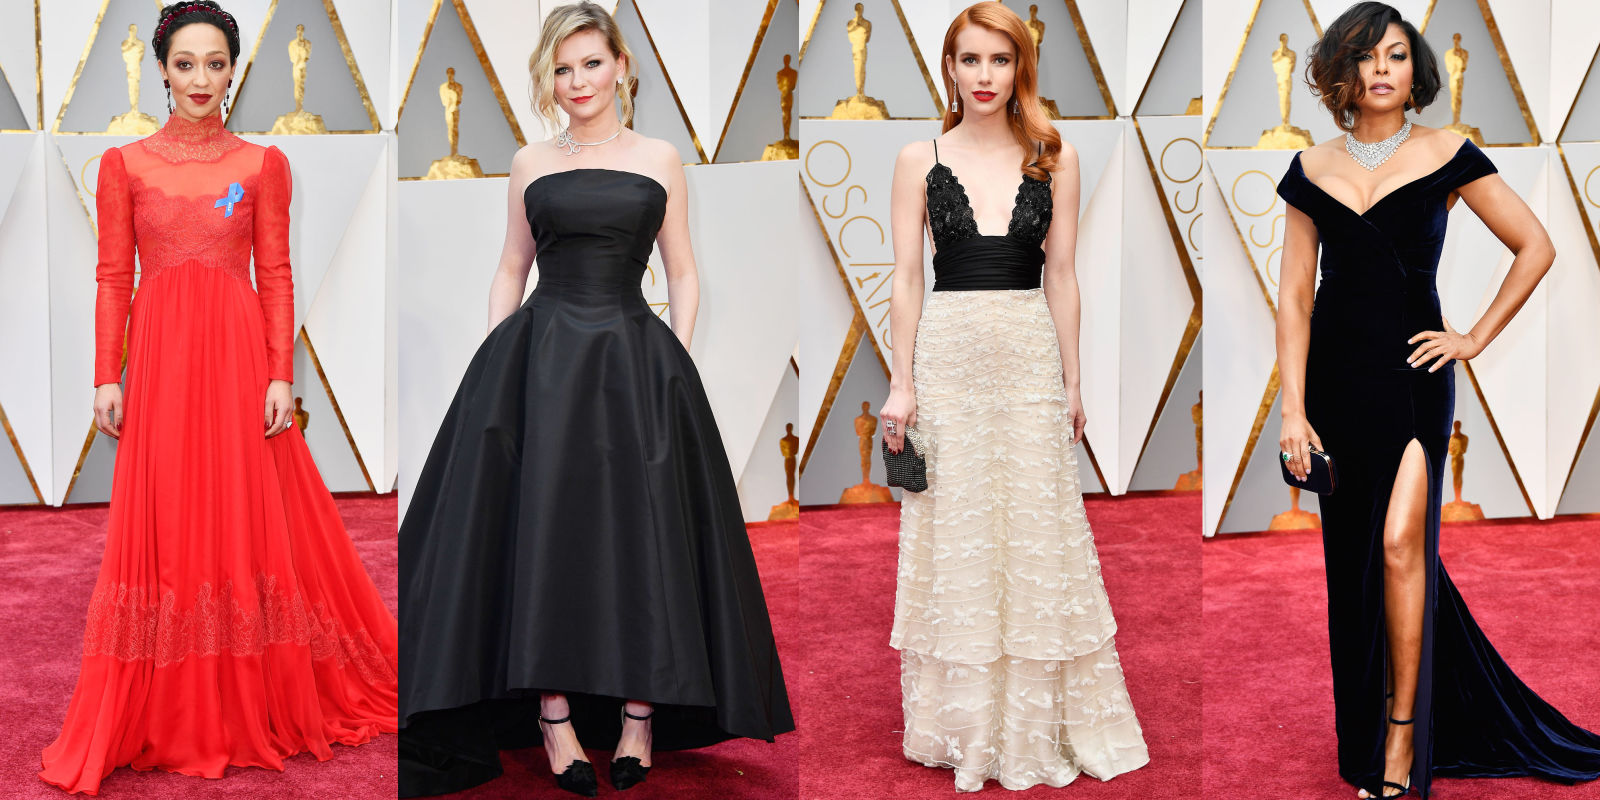 Best dresses from the oscars red carpet 2017 academy awards red carpet fashion - Red carpet oscar dresses ...